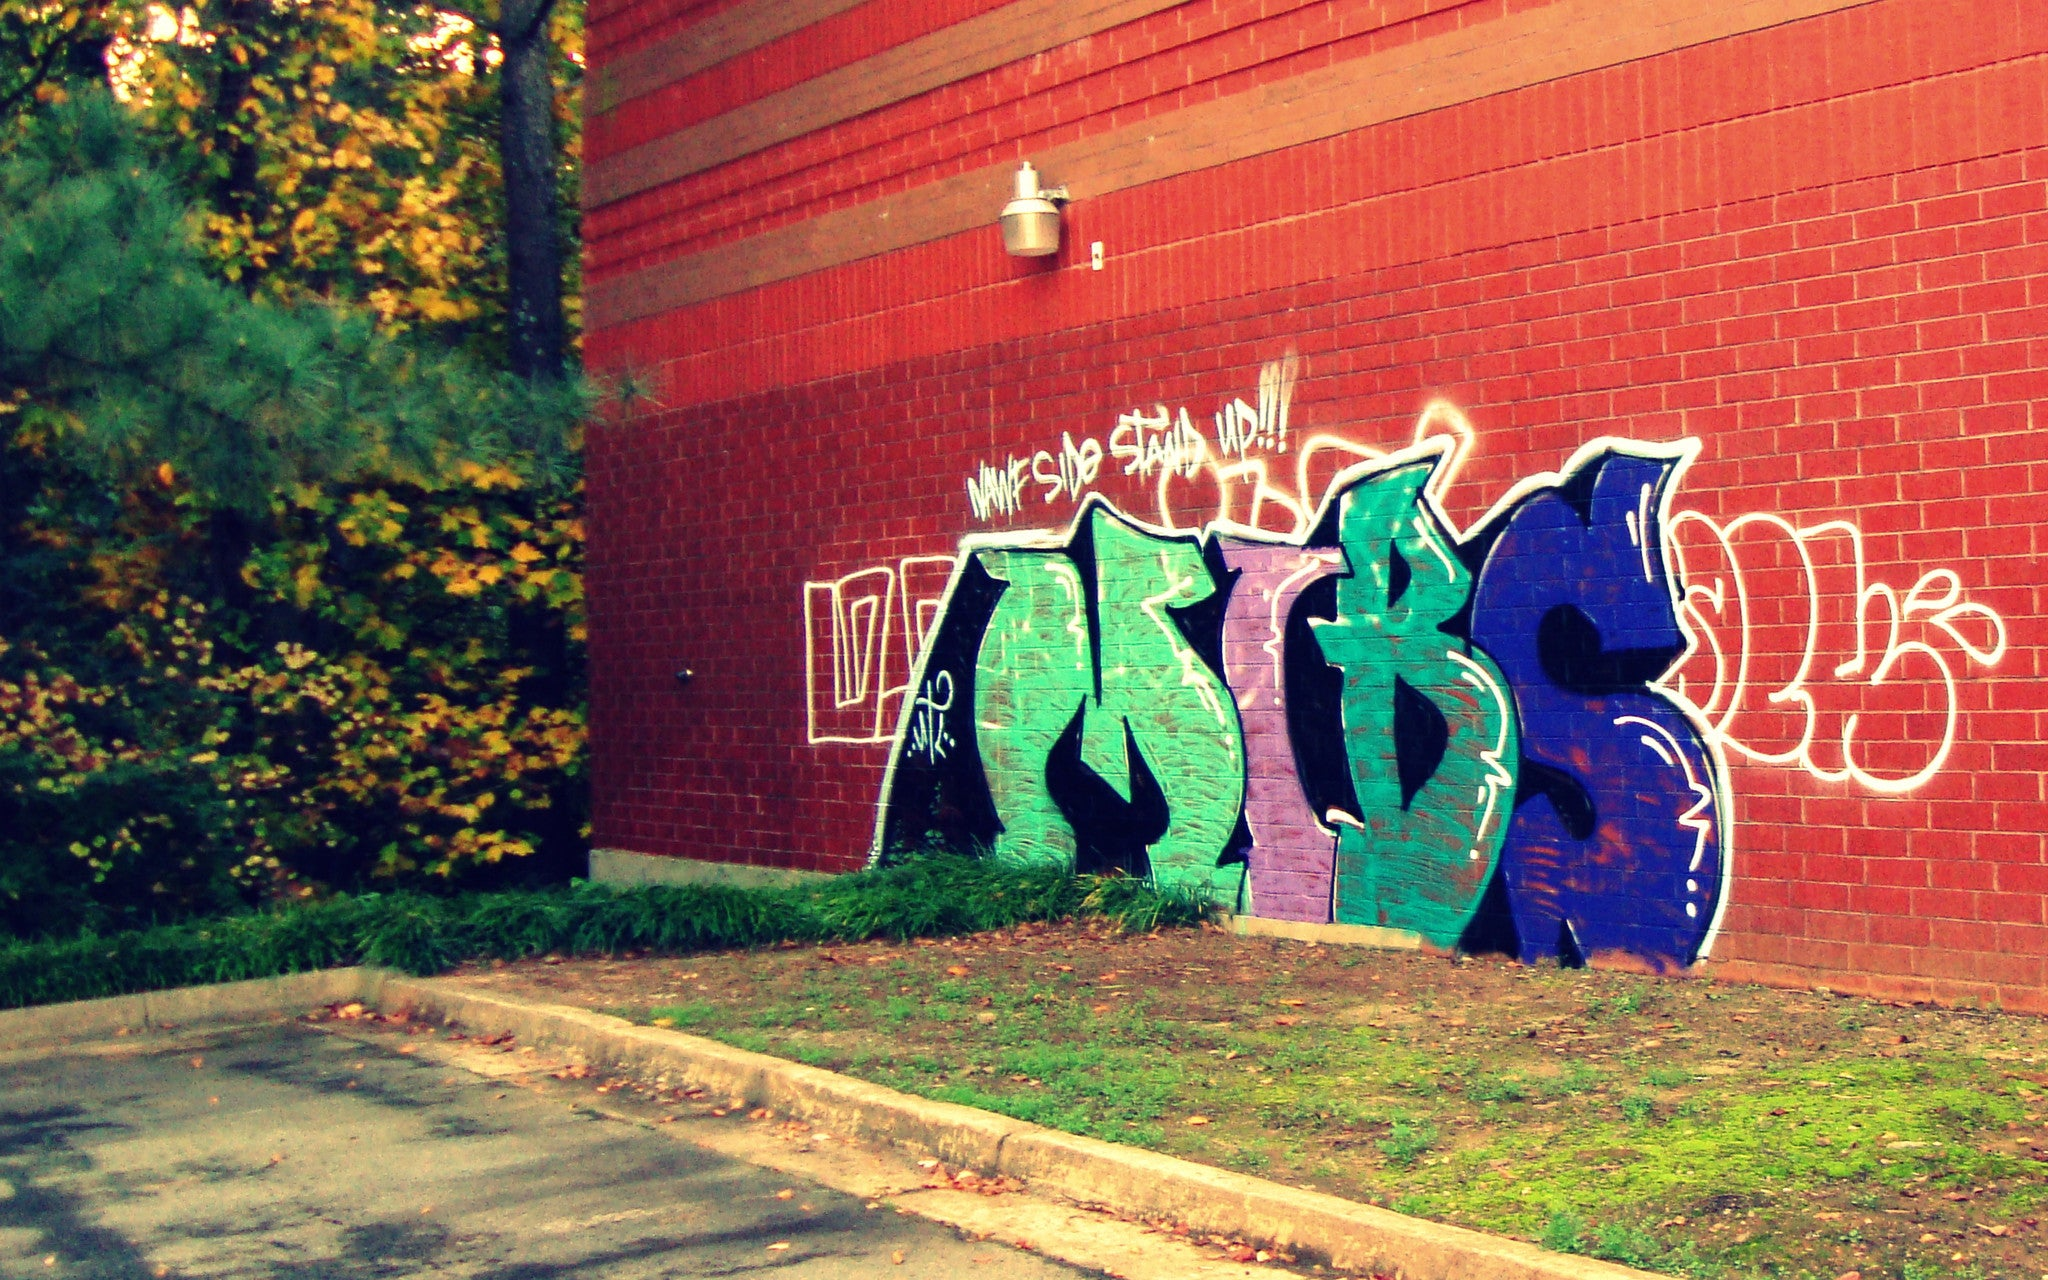 Surburban Graffiti #1 [Limited Edition 1/10] Digital Photography by Alaina Willi